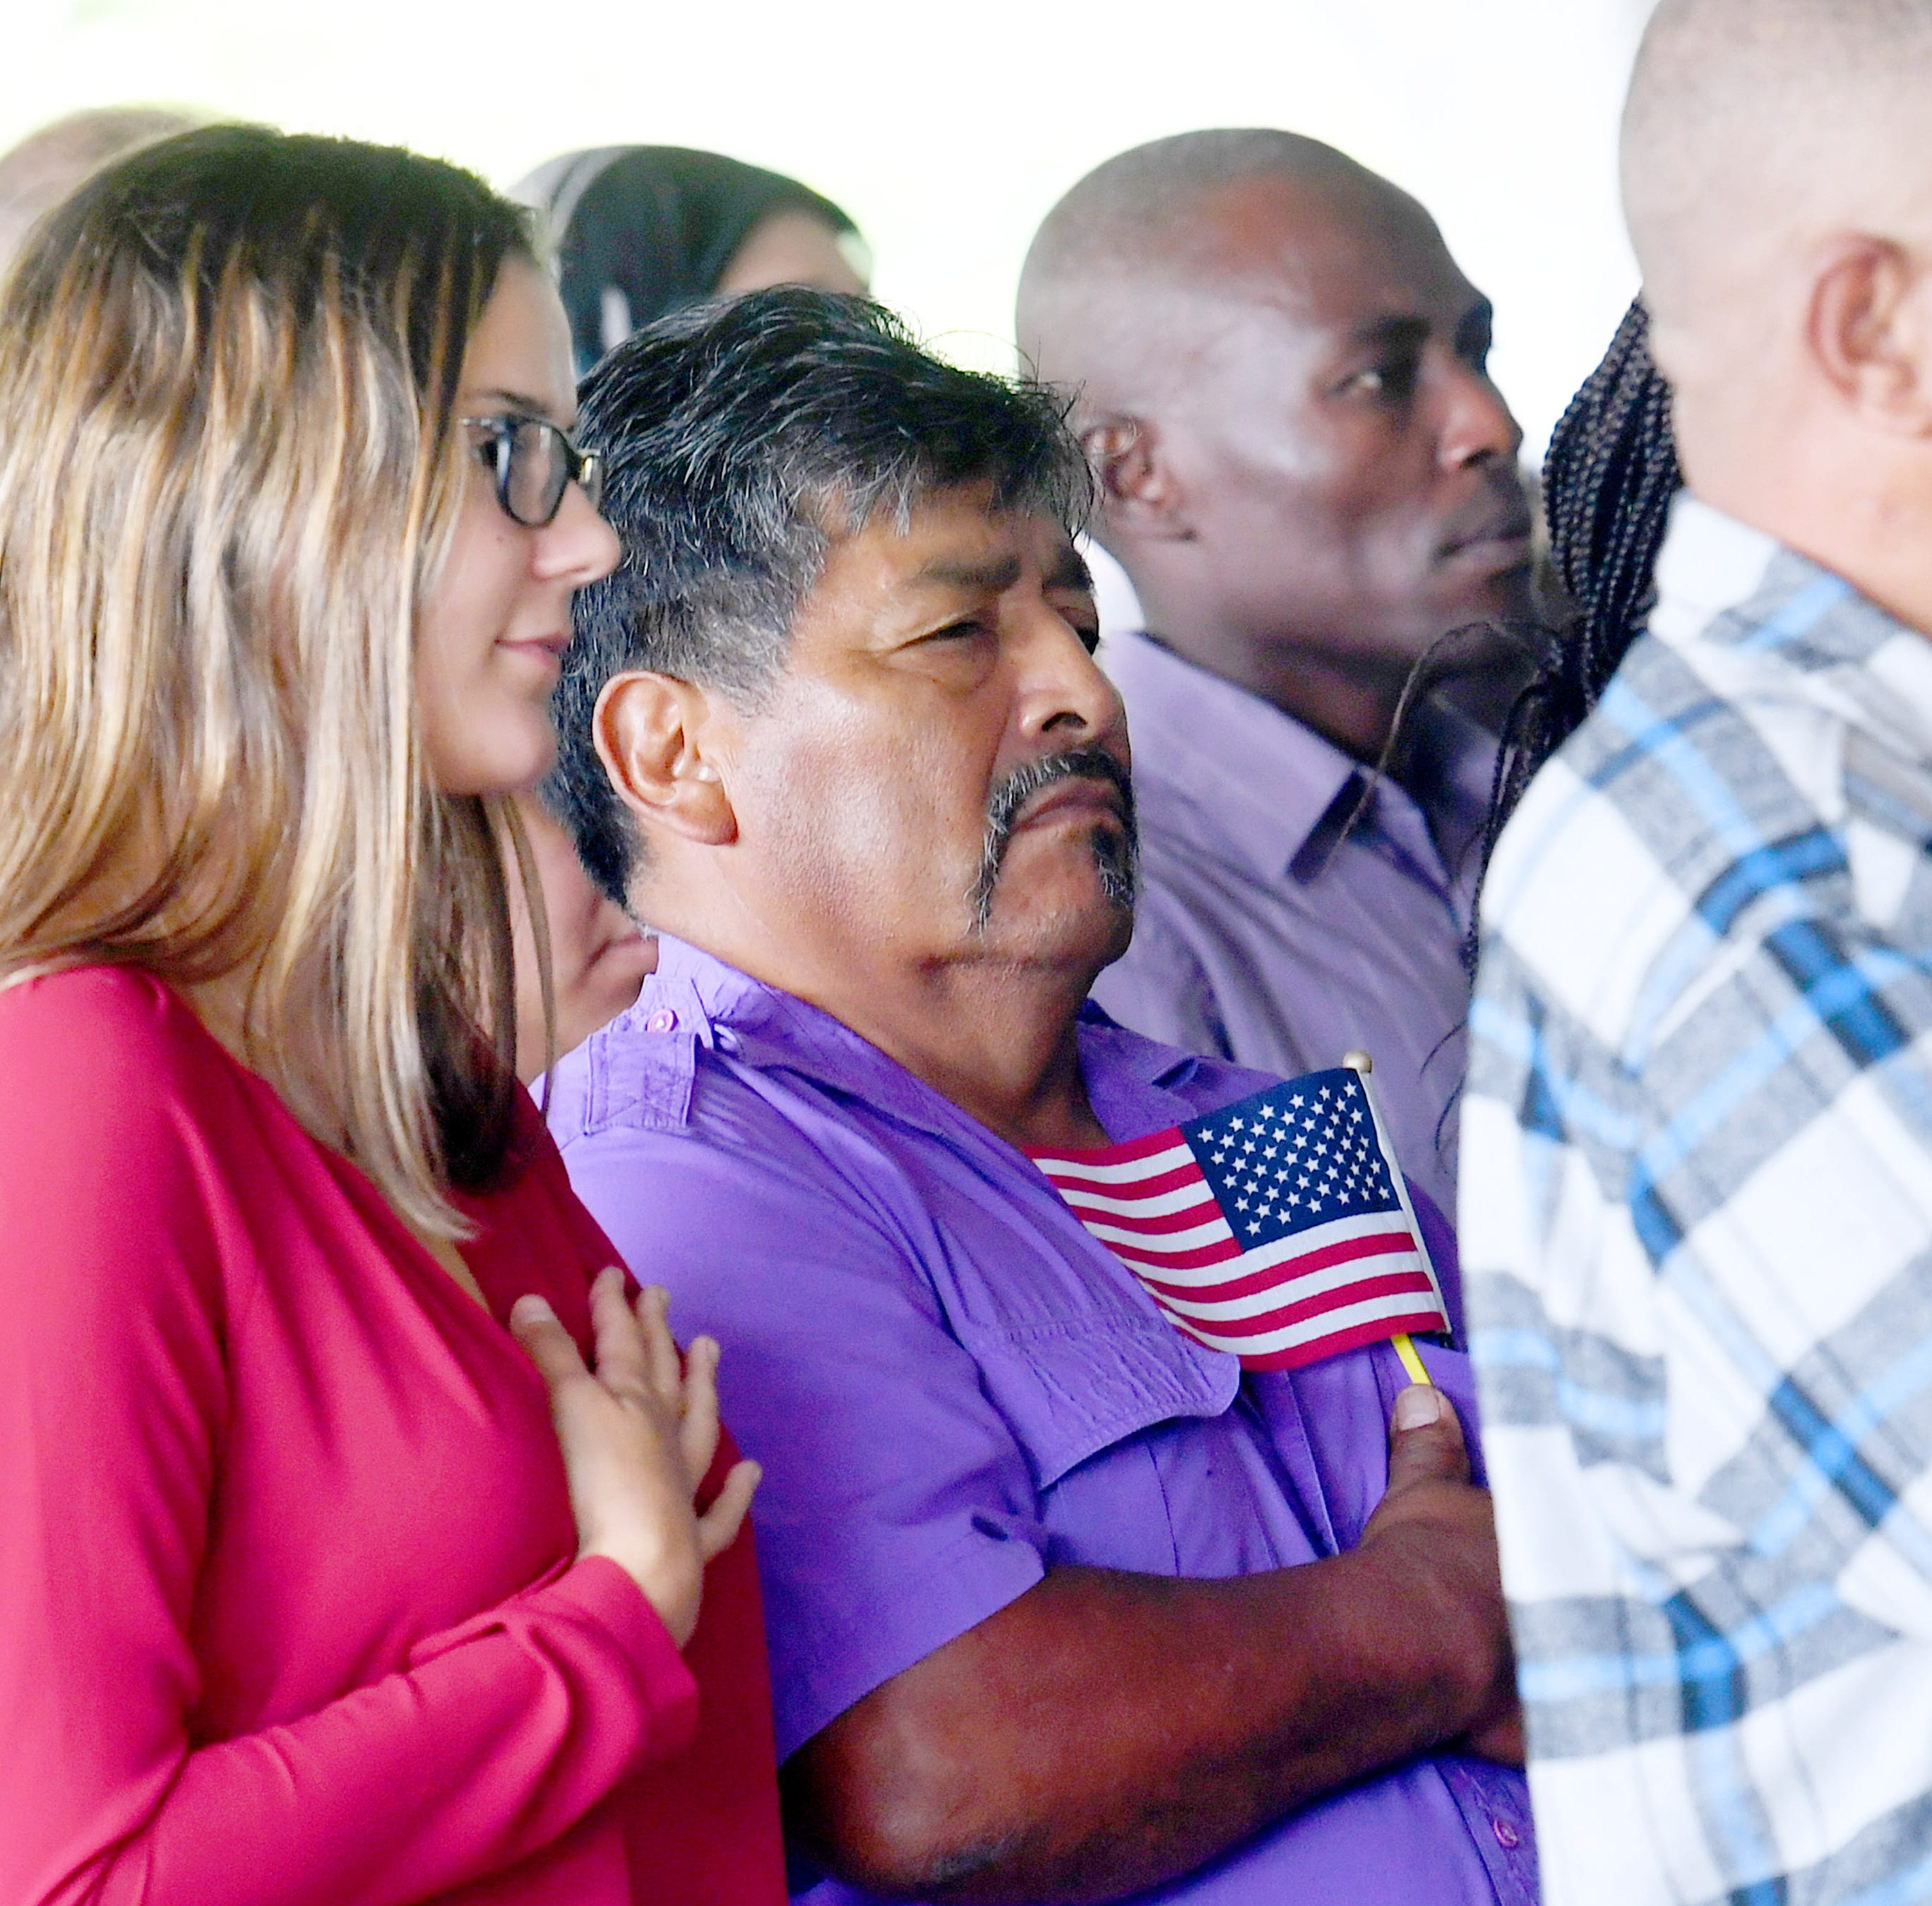 One petitioner for citizenship holds a small American flag over his heart as the national anthem is sung during a naturalization ceremony held at the Frontier Culture Museum on Tuesday, Sept. 18. 2018.